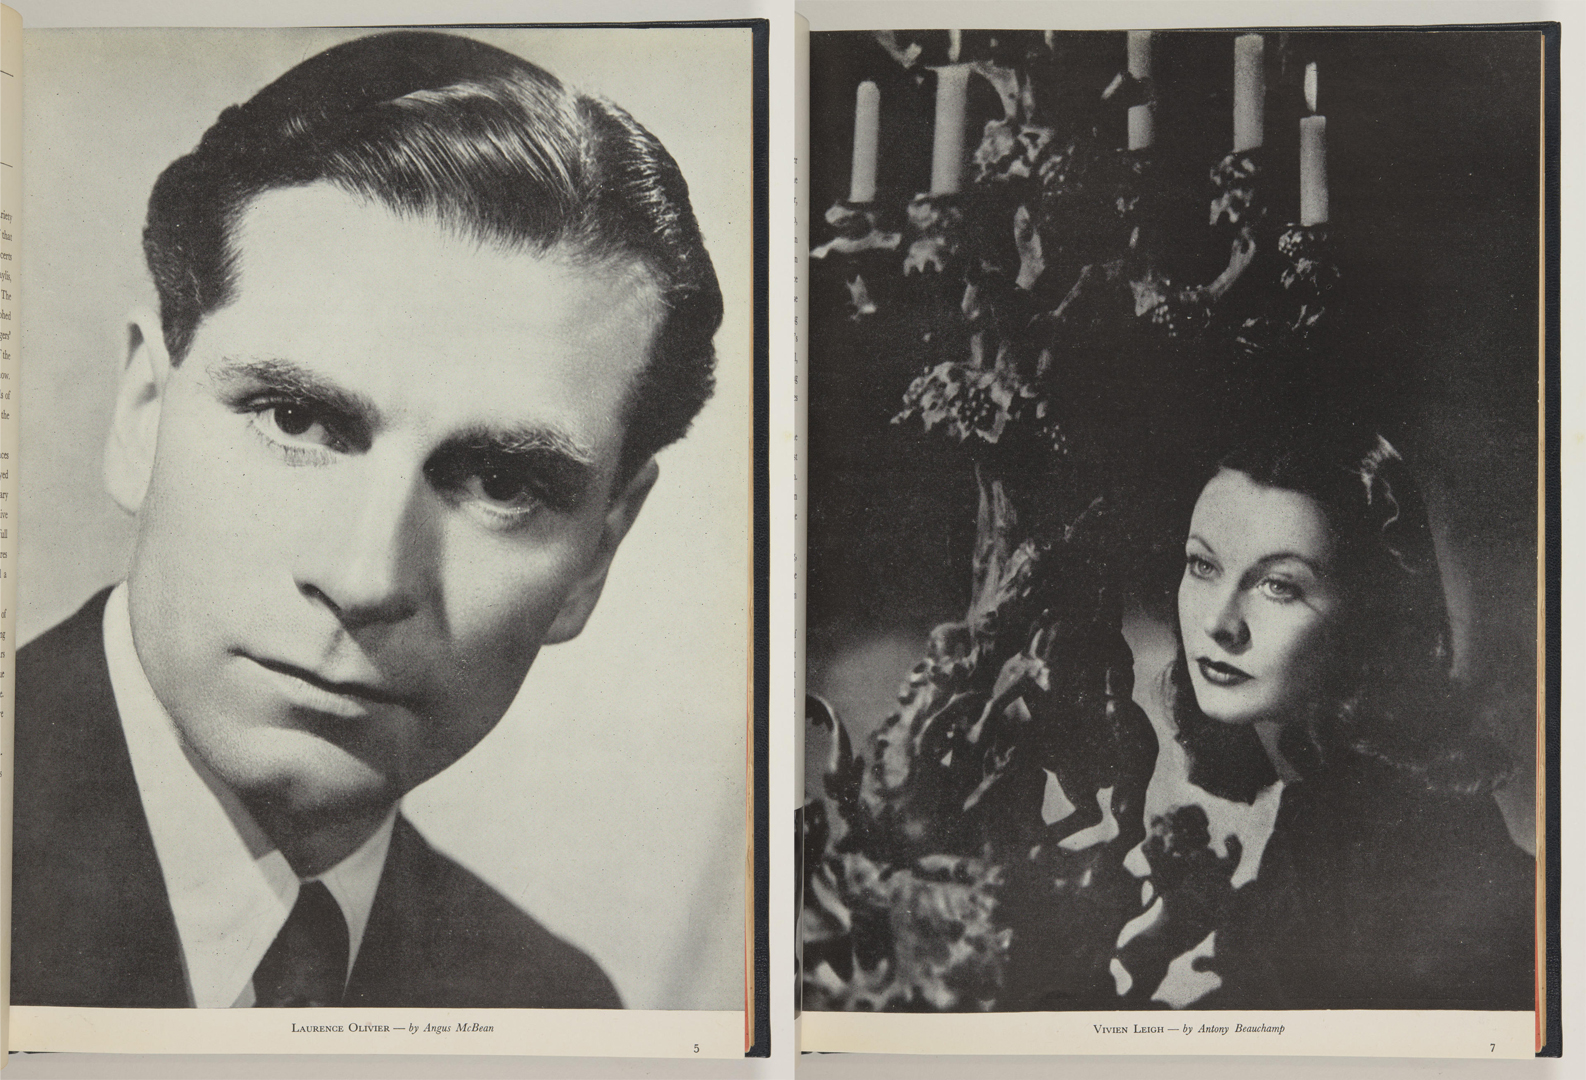 Laurence Olivier and Vivien Leigh in the Old Vic Theatre programme 1948